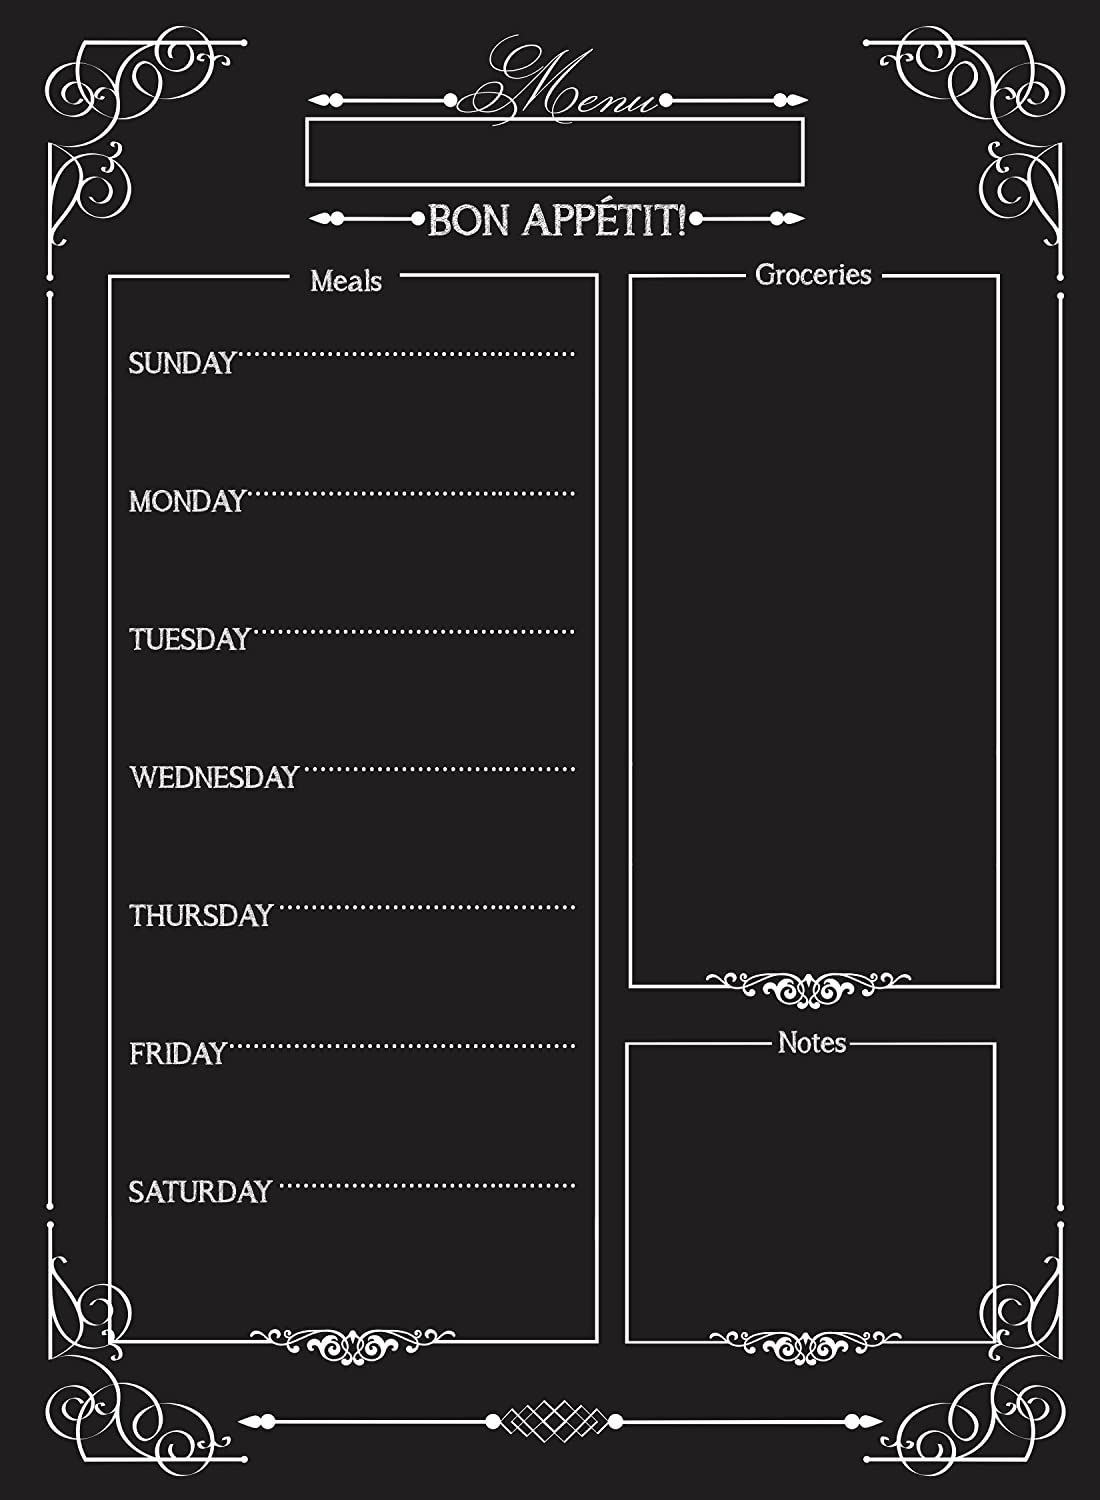 Weekly Menu | Magnetic Chalkboard Style Refrigerator Meal Planner | Grocery Shopping List | Dry Erase Board | Large Calendar | Kitchen Organizer | Smooth Black Surface | Waterproof | 11 x 15 inches Simply Chic Chateau